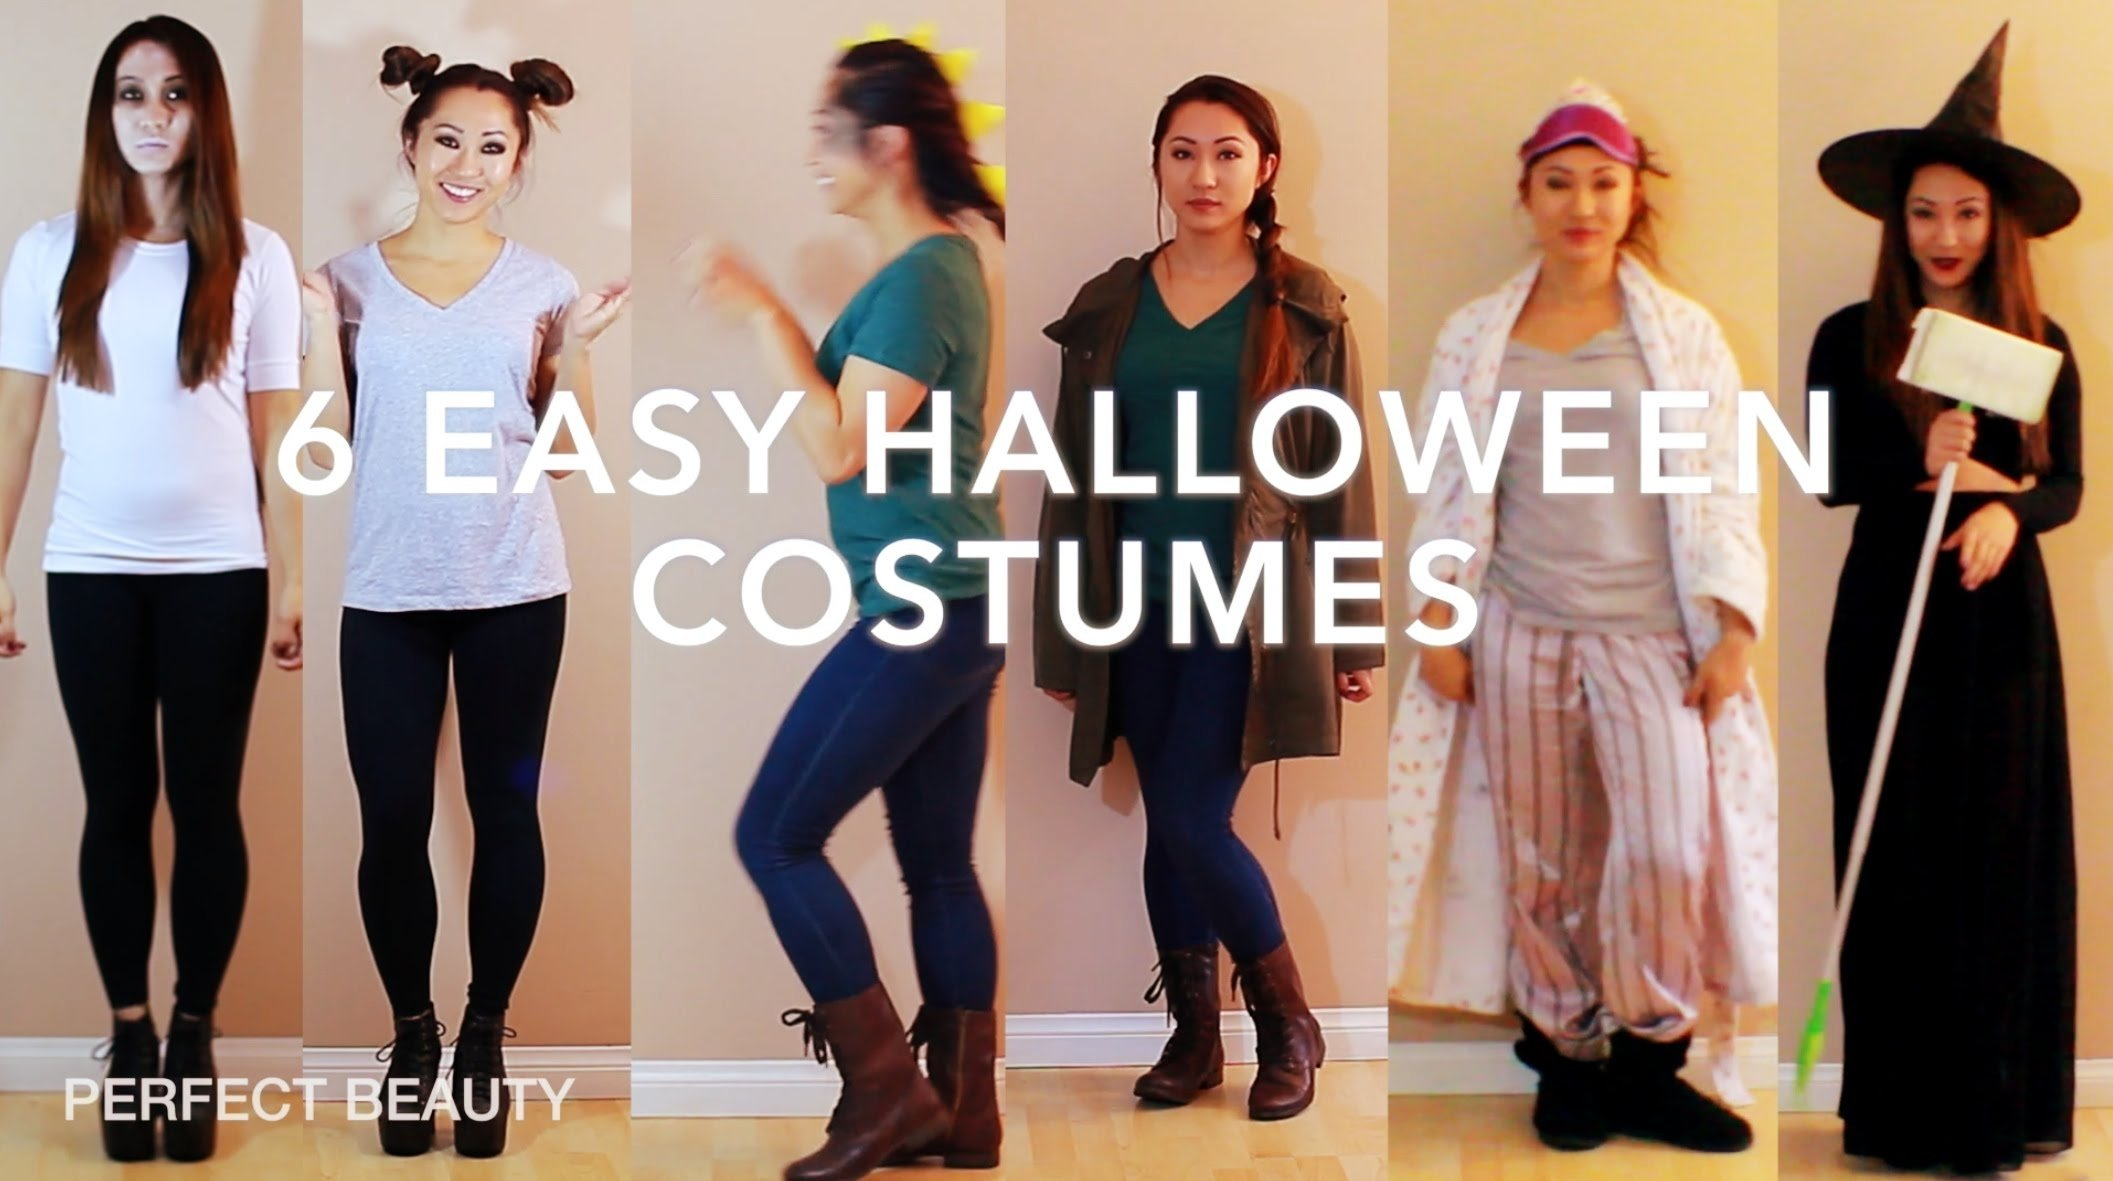 10 Attractive Last Minute Homemade Halloween Costume Ideas last minute diy halloween costume ideas perfect beauty youtube 16 2020